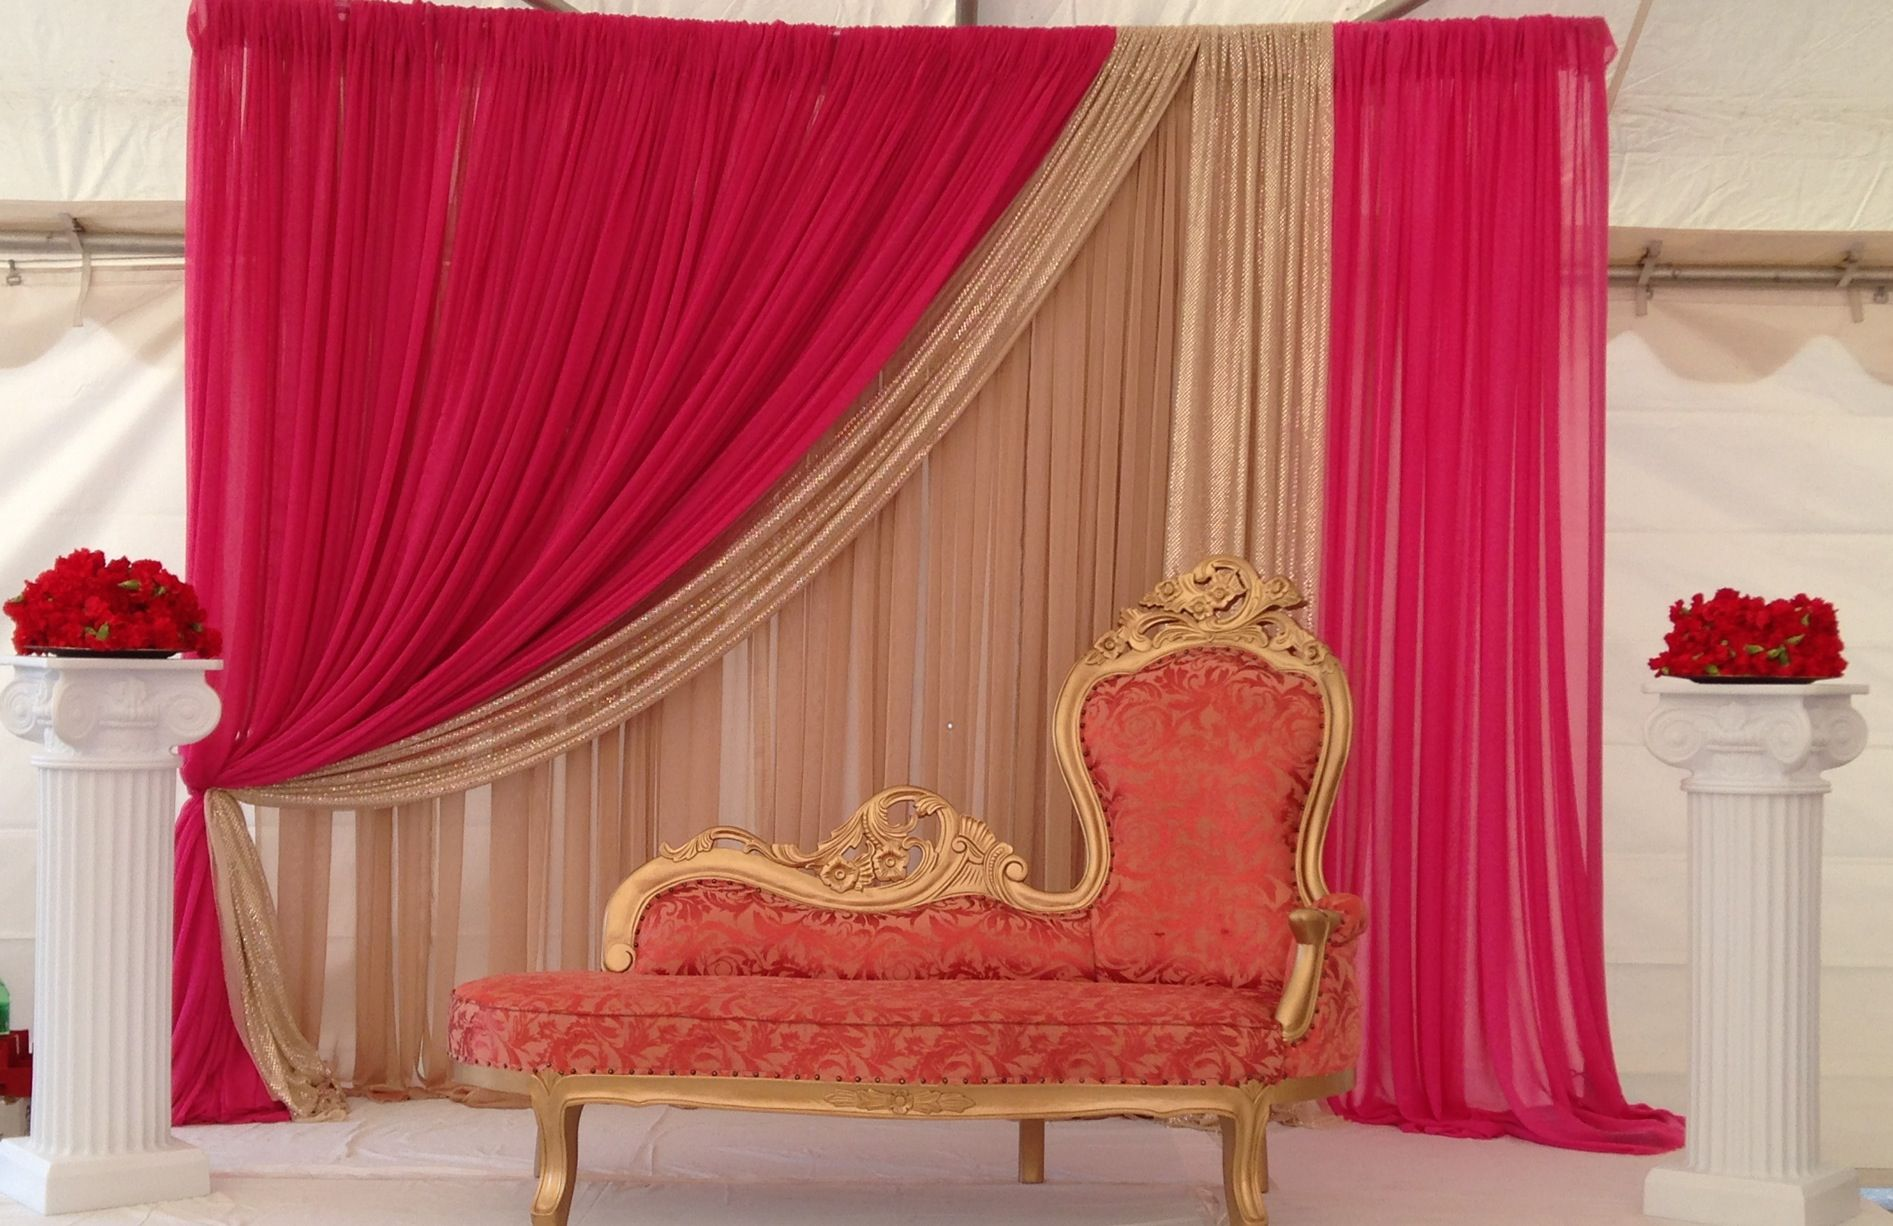 Indian Wedding Decor Pink And Red Inspired Wedding Pinterest Weddings Backdrops And